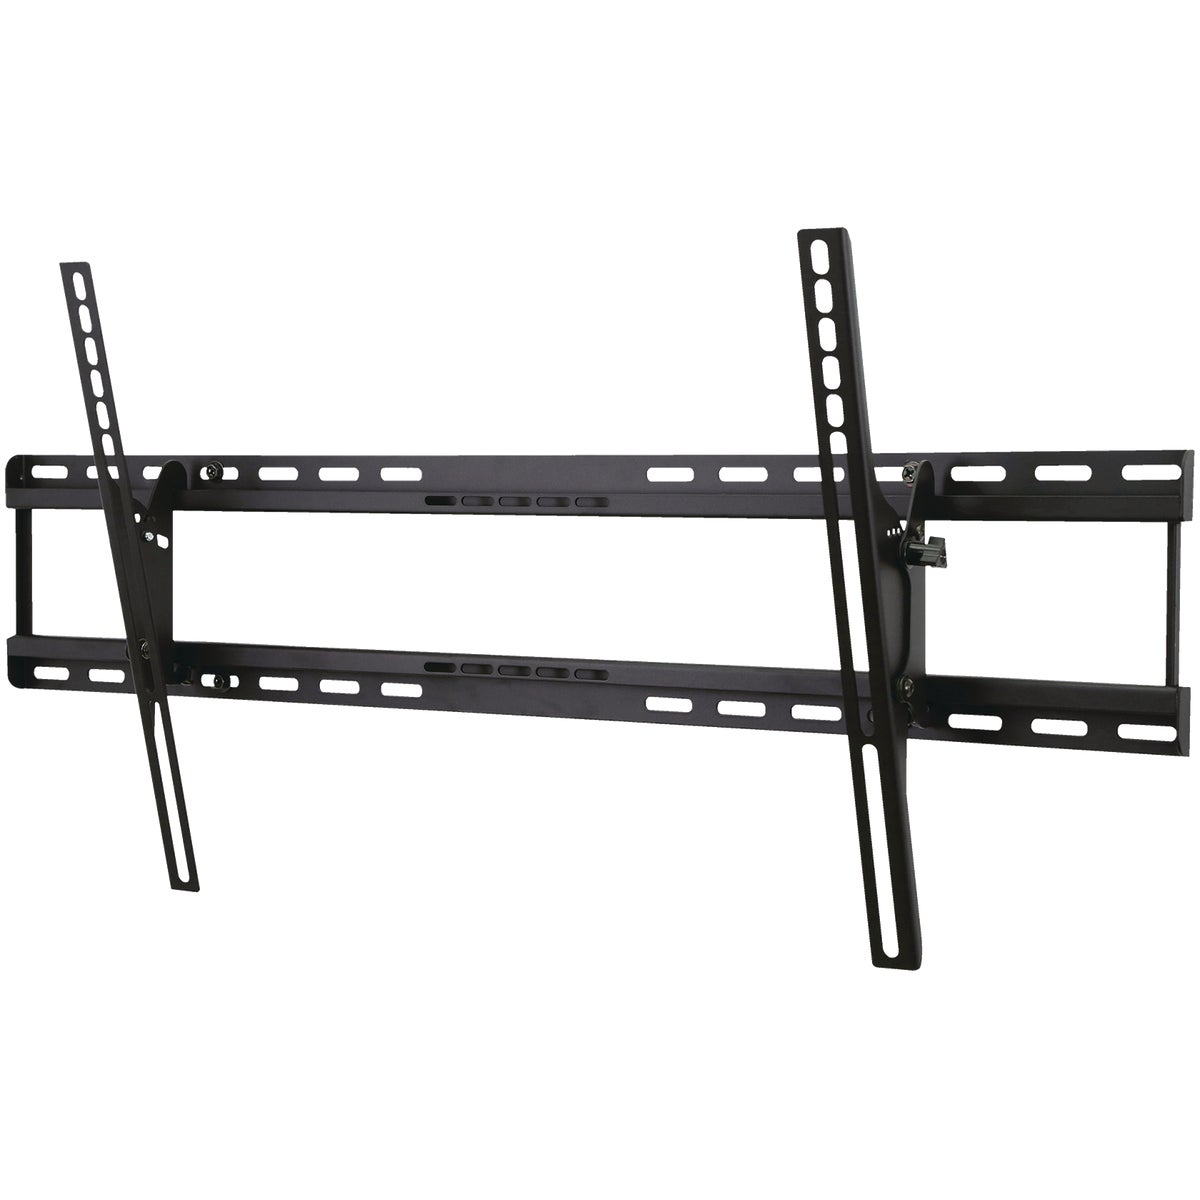 "32-65"" TILT TV MOUNT - HST665 by Peerless Industries"